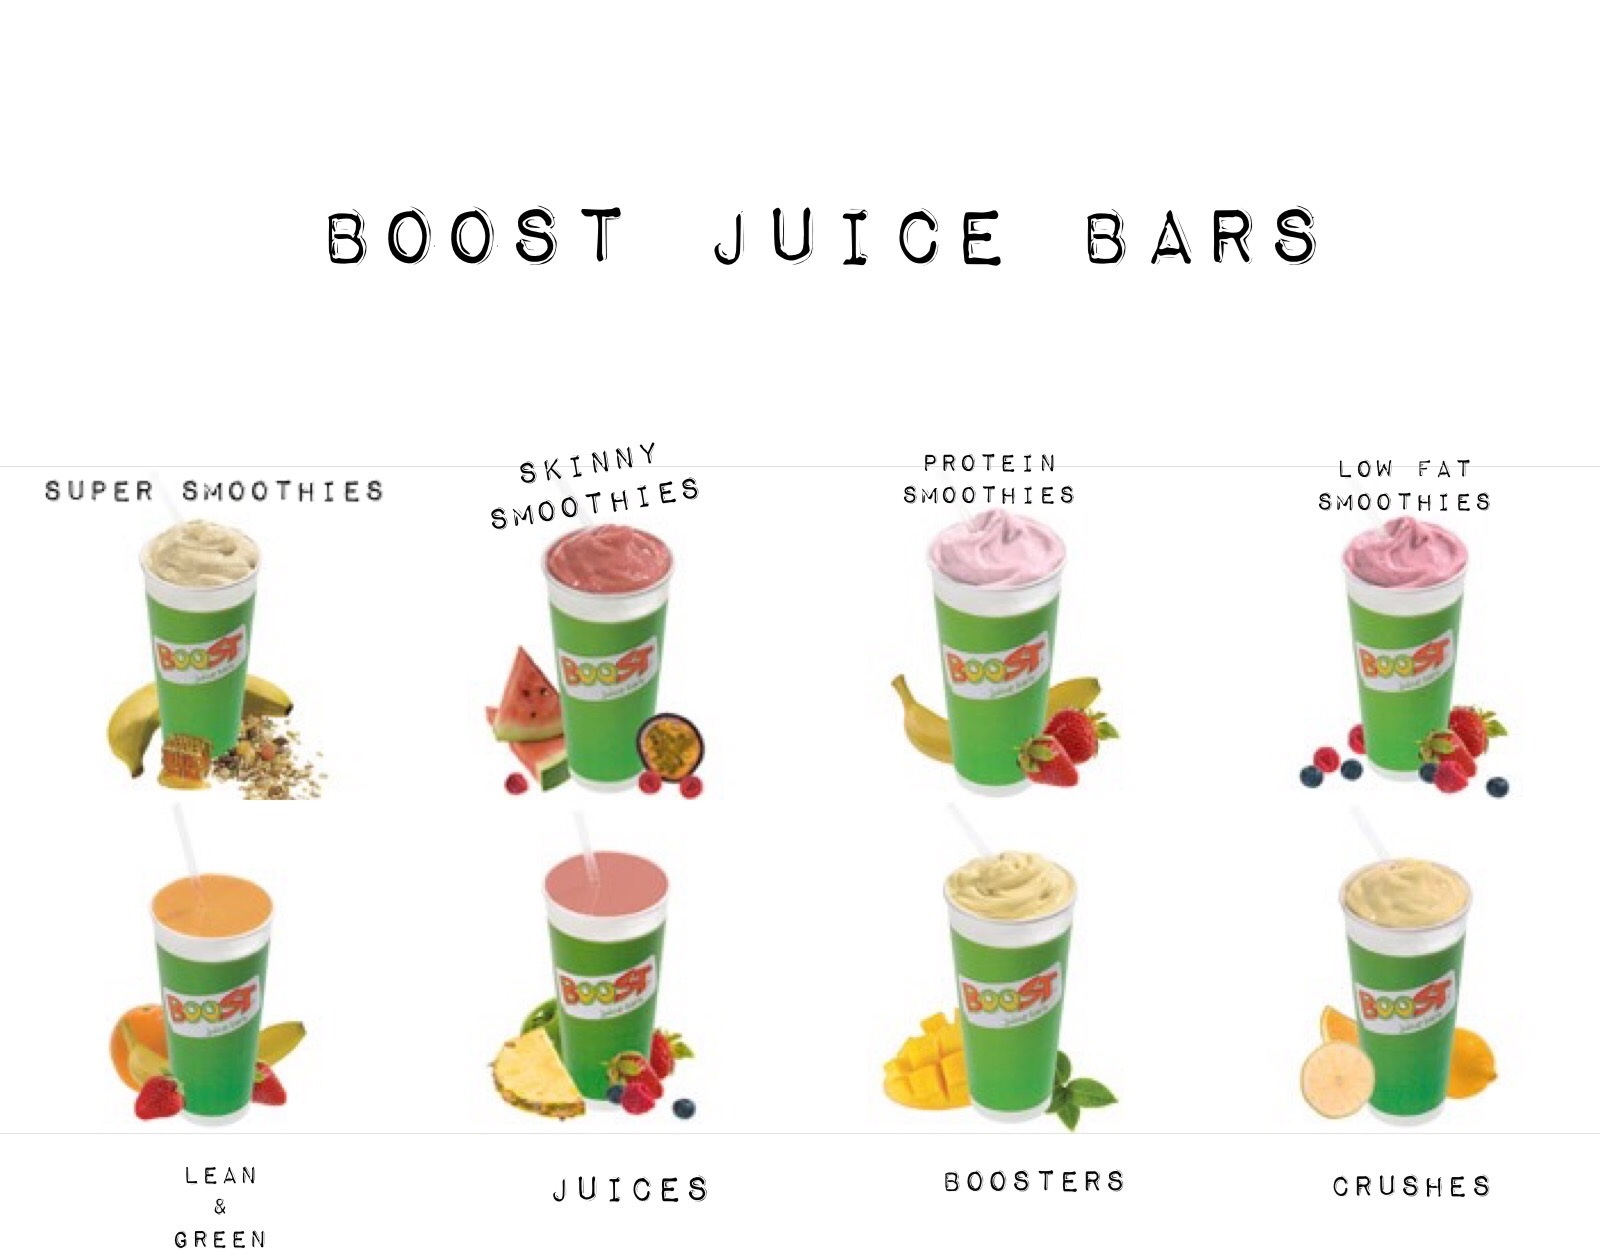 boost juice essay List of australian brands for brand audit smiggle crumpler nudie juice boost juice eagle boys darrell lea angus and robertson jb hi at home essays.